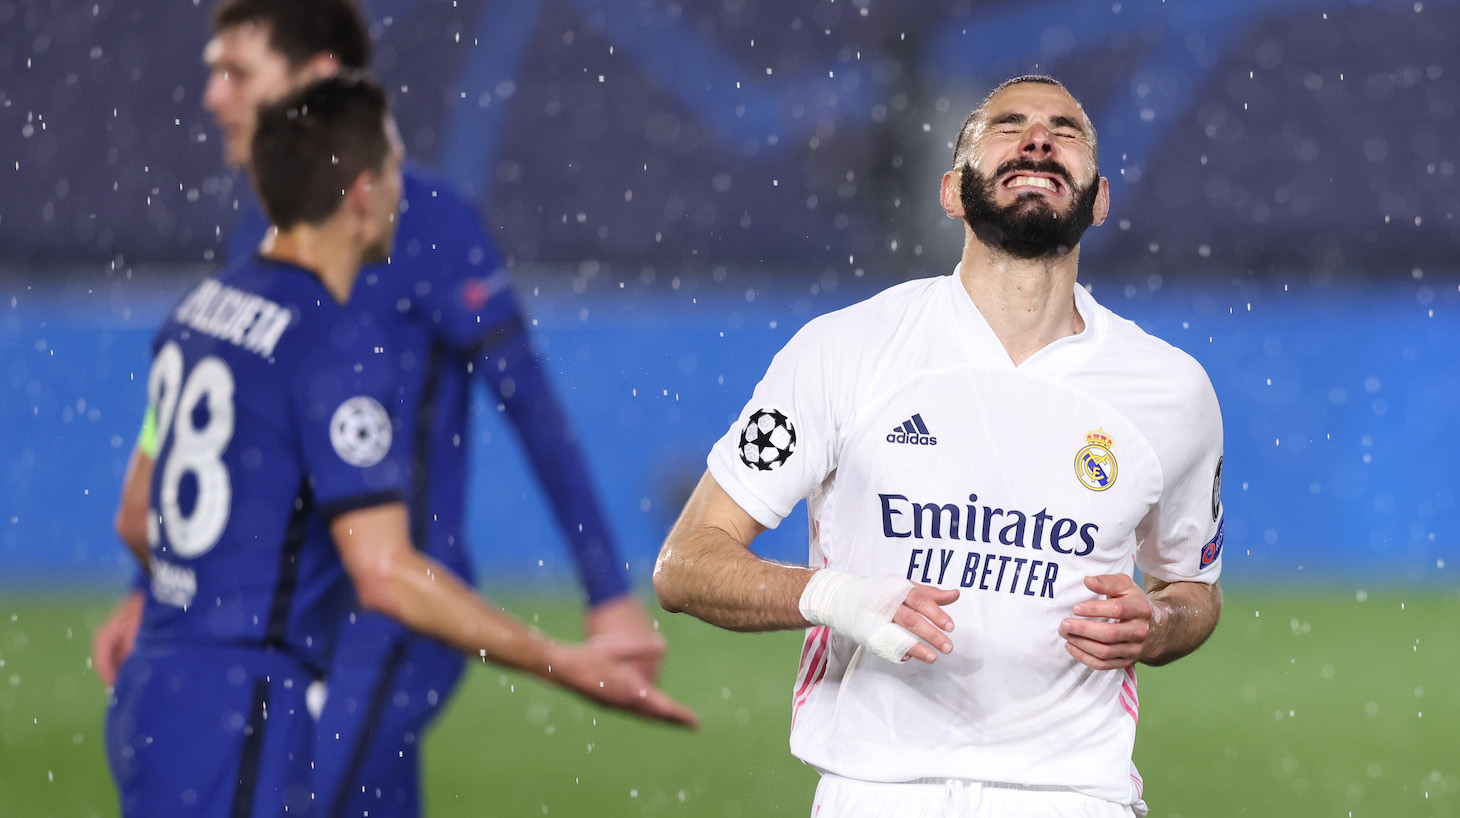 Karim Benzema of Real Madrid reacts after a missed shot during the UEFA Champions League Semi Final First Leg match between Real Madrid and Chelsea FC at Estadio Alfredo Di Stefano on April 27, 2021 in Madrid, Spain.